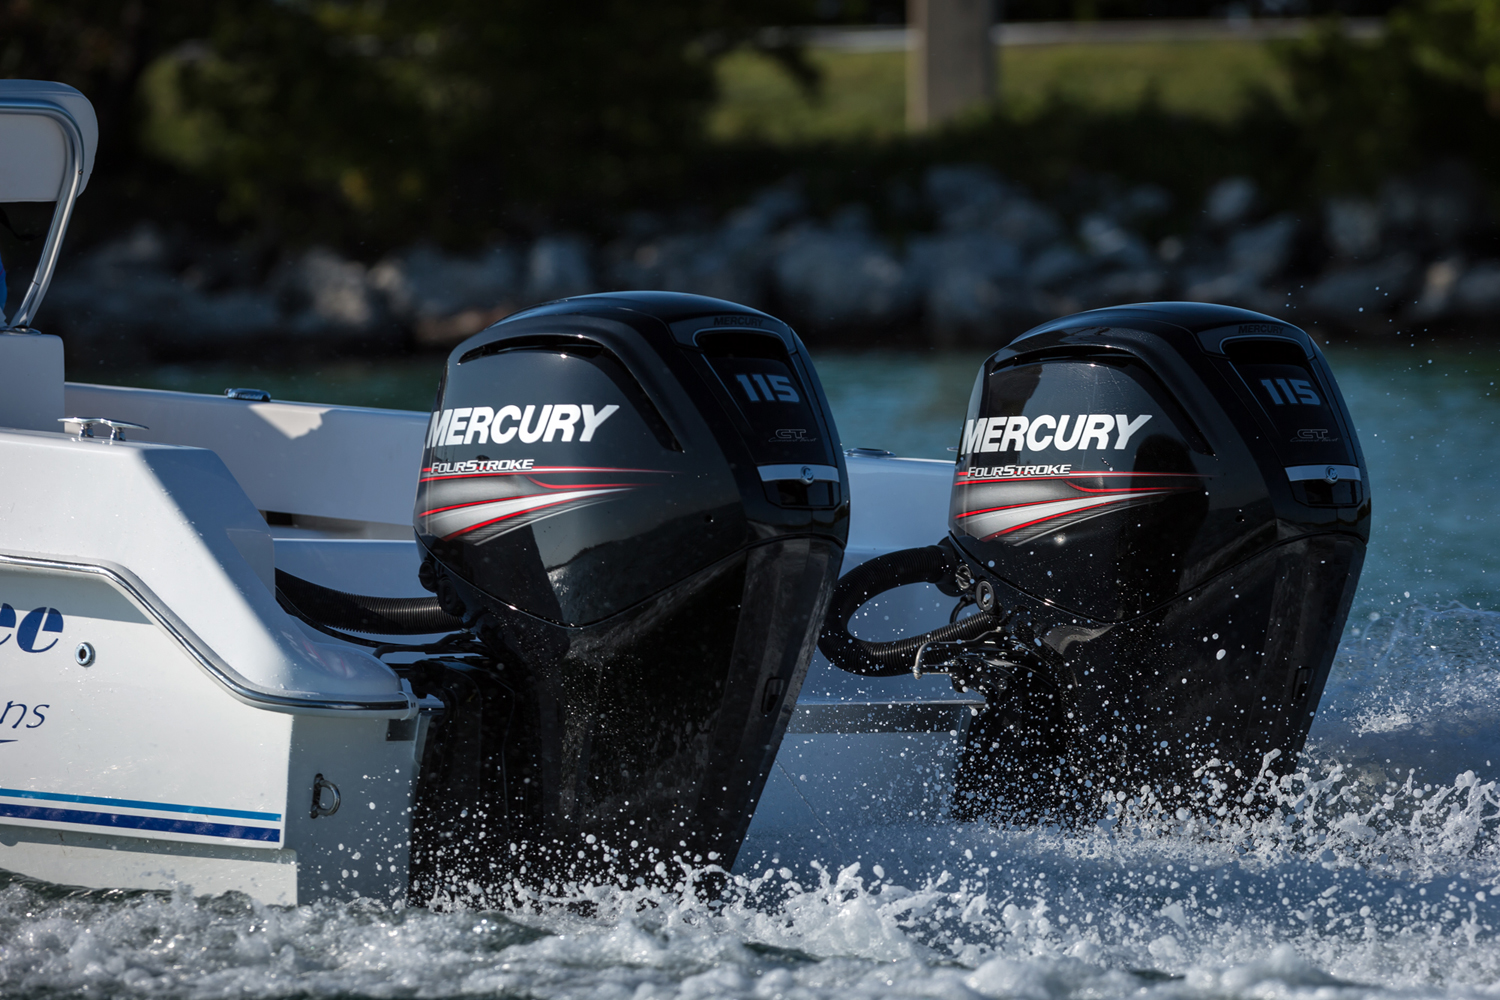 New Mercury 150 FourStroke Outboard Debuts - boats.com